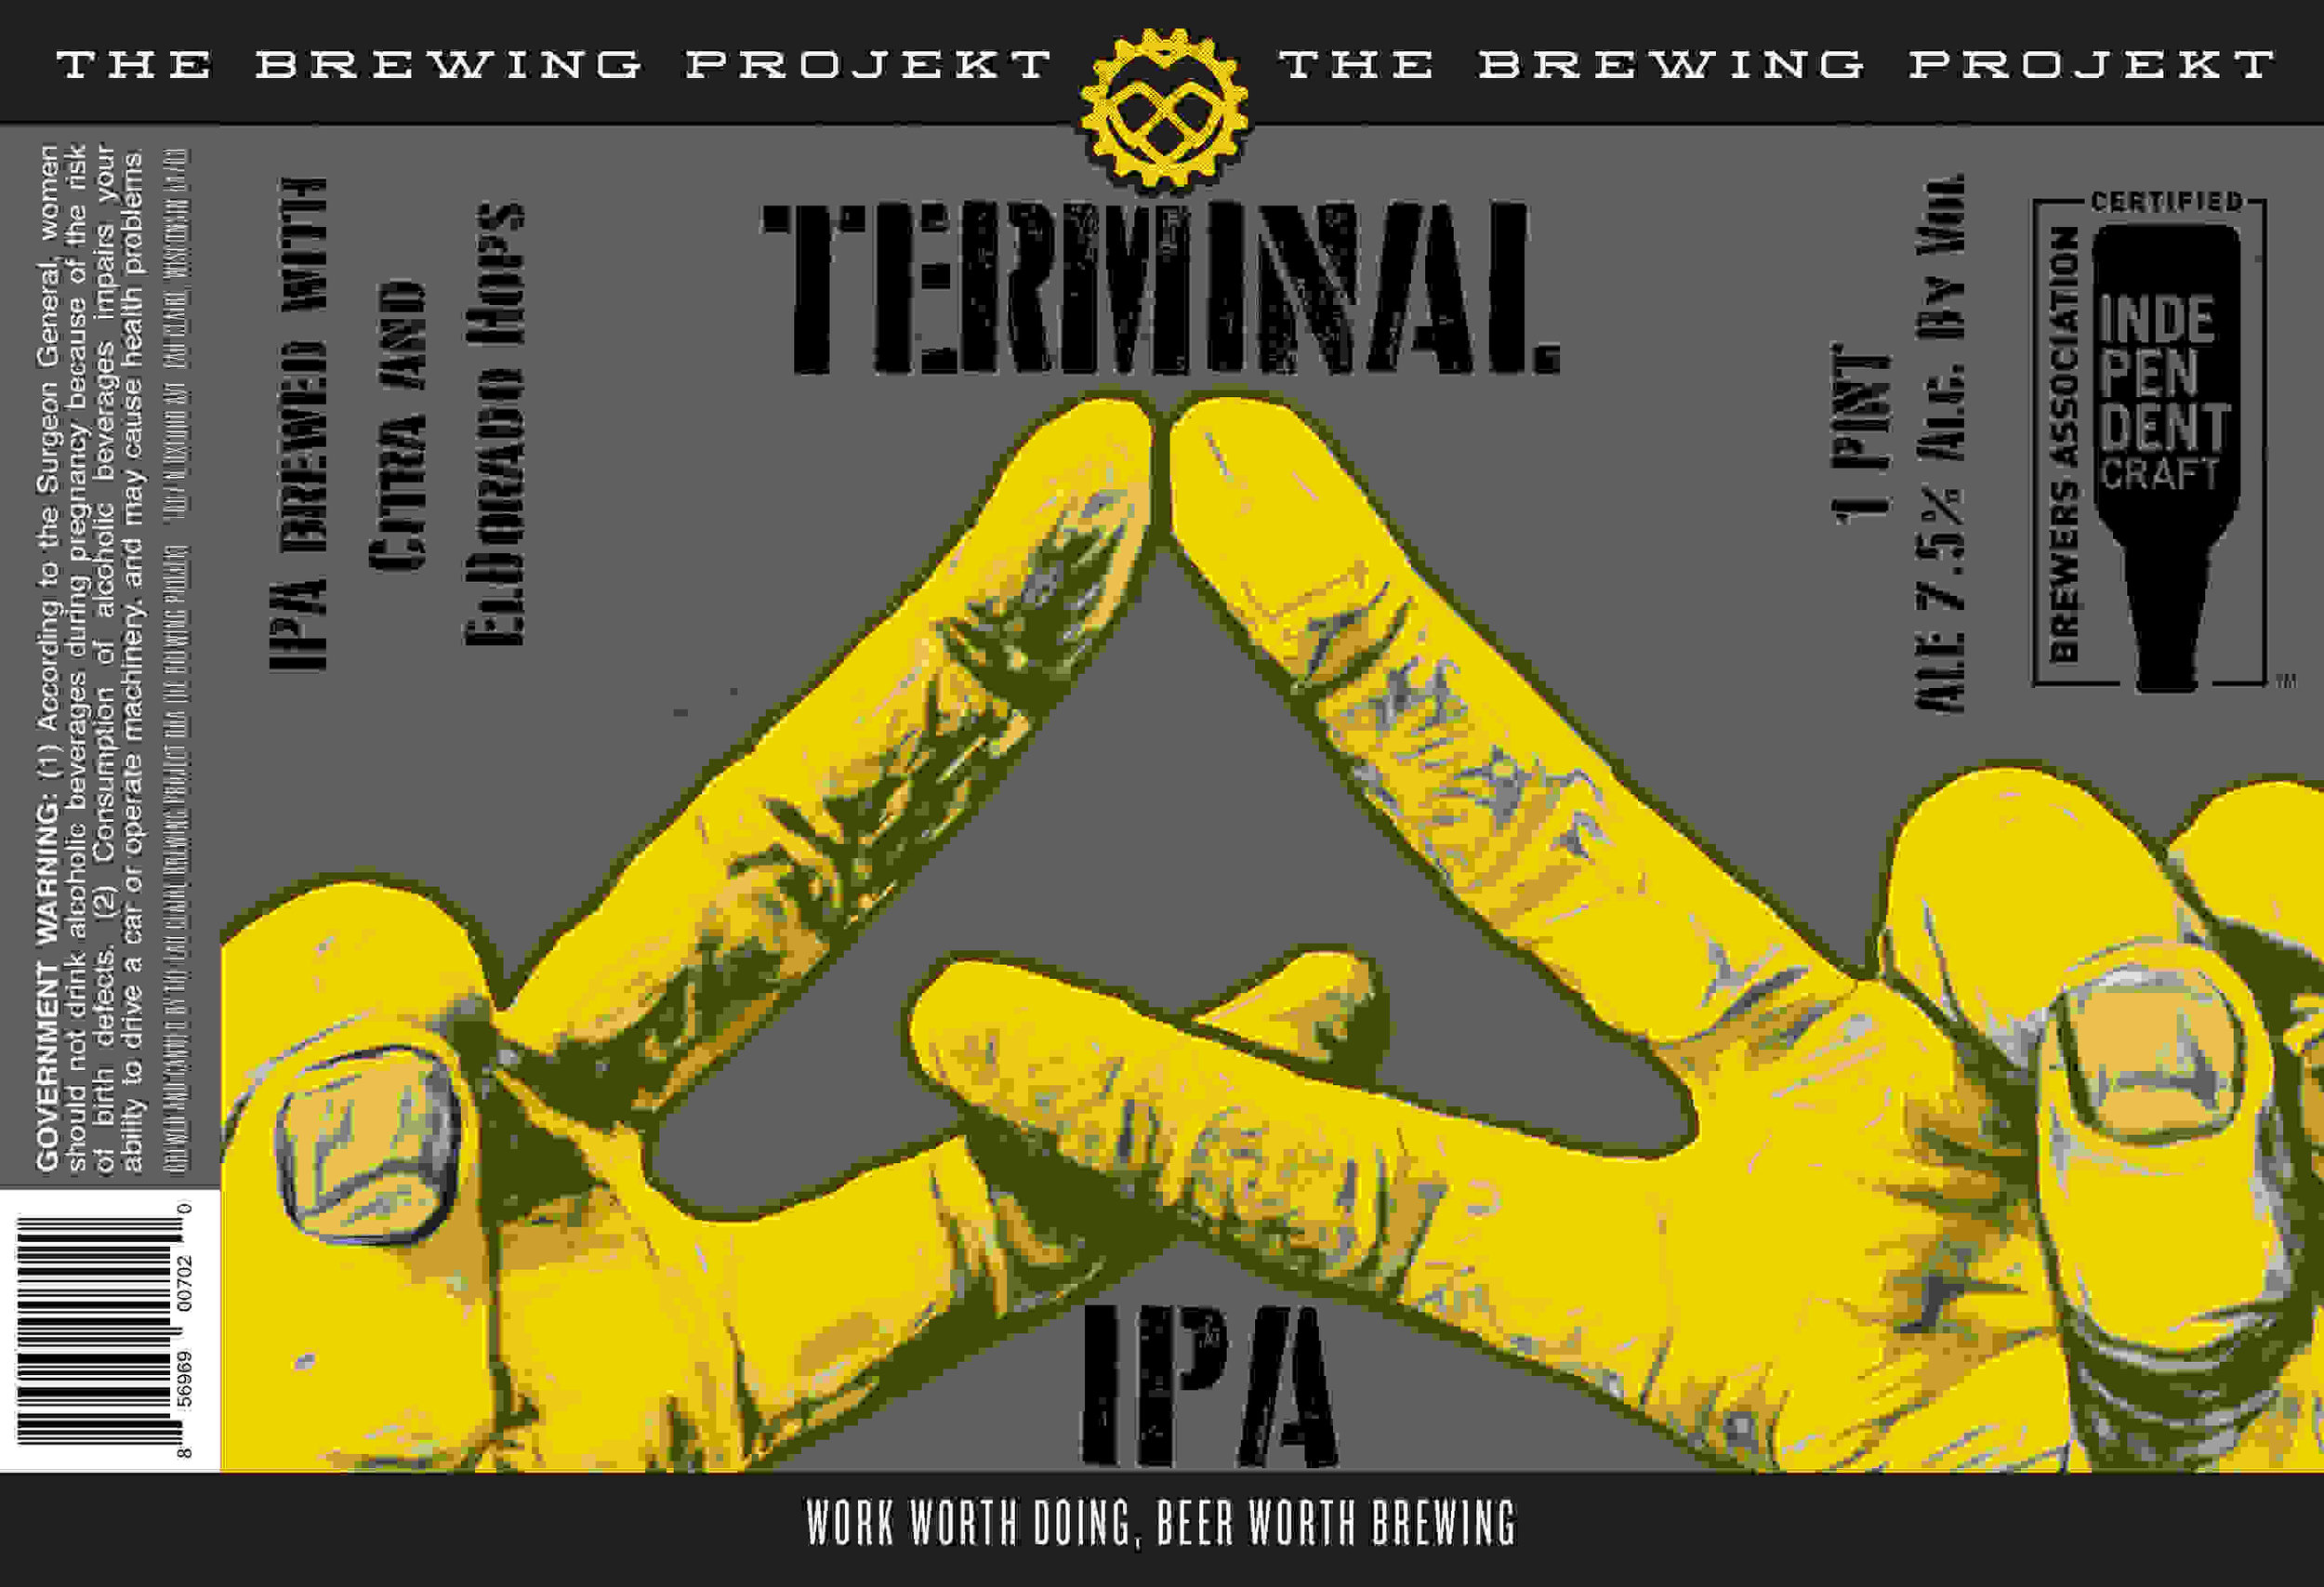 TERMINAL IPA - A New Hazy IPA brewed up with two of our favorite hops: Citra and El Dorado. This one is a tip of the hat to Will's time spent in the USMC and honors all the silly ass E3s. Back in 1775... 7.5% ABV